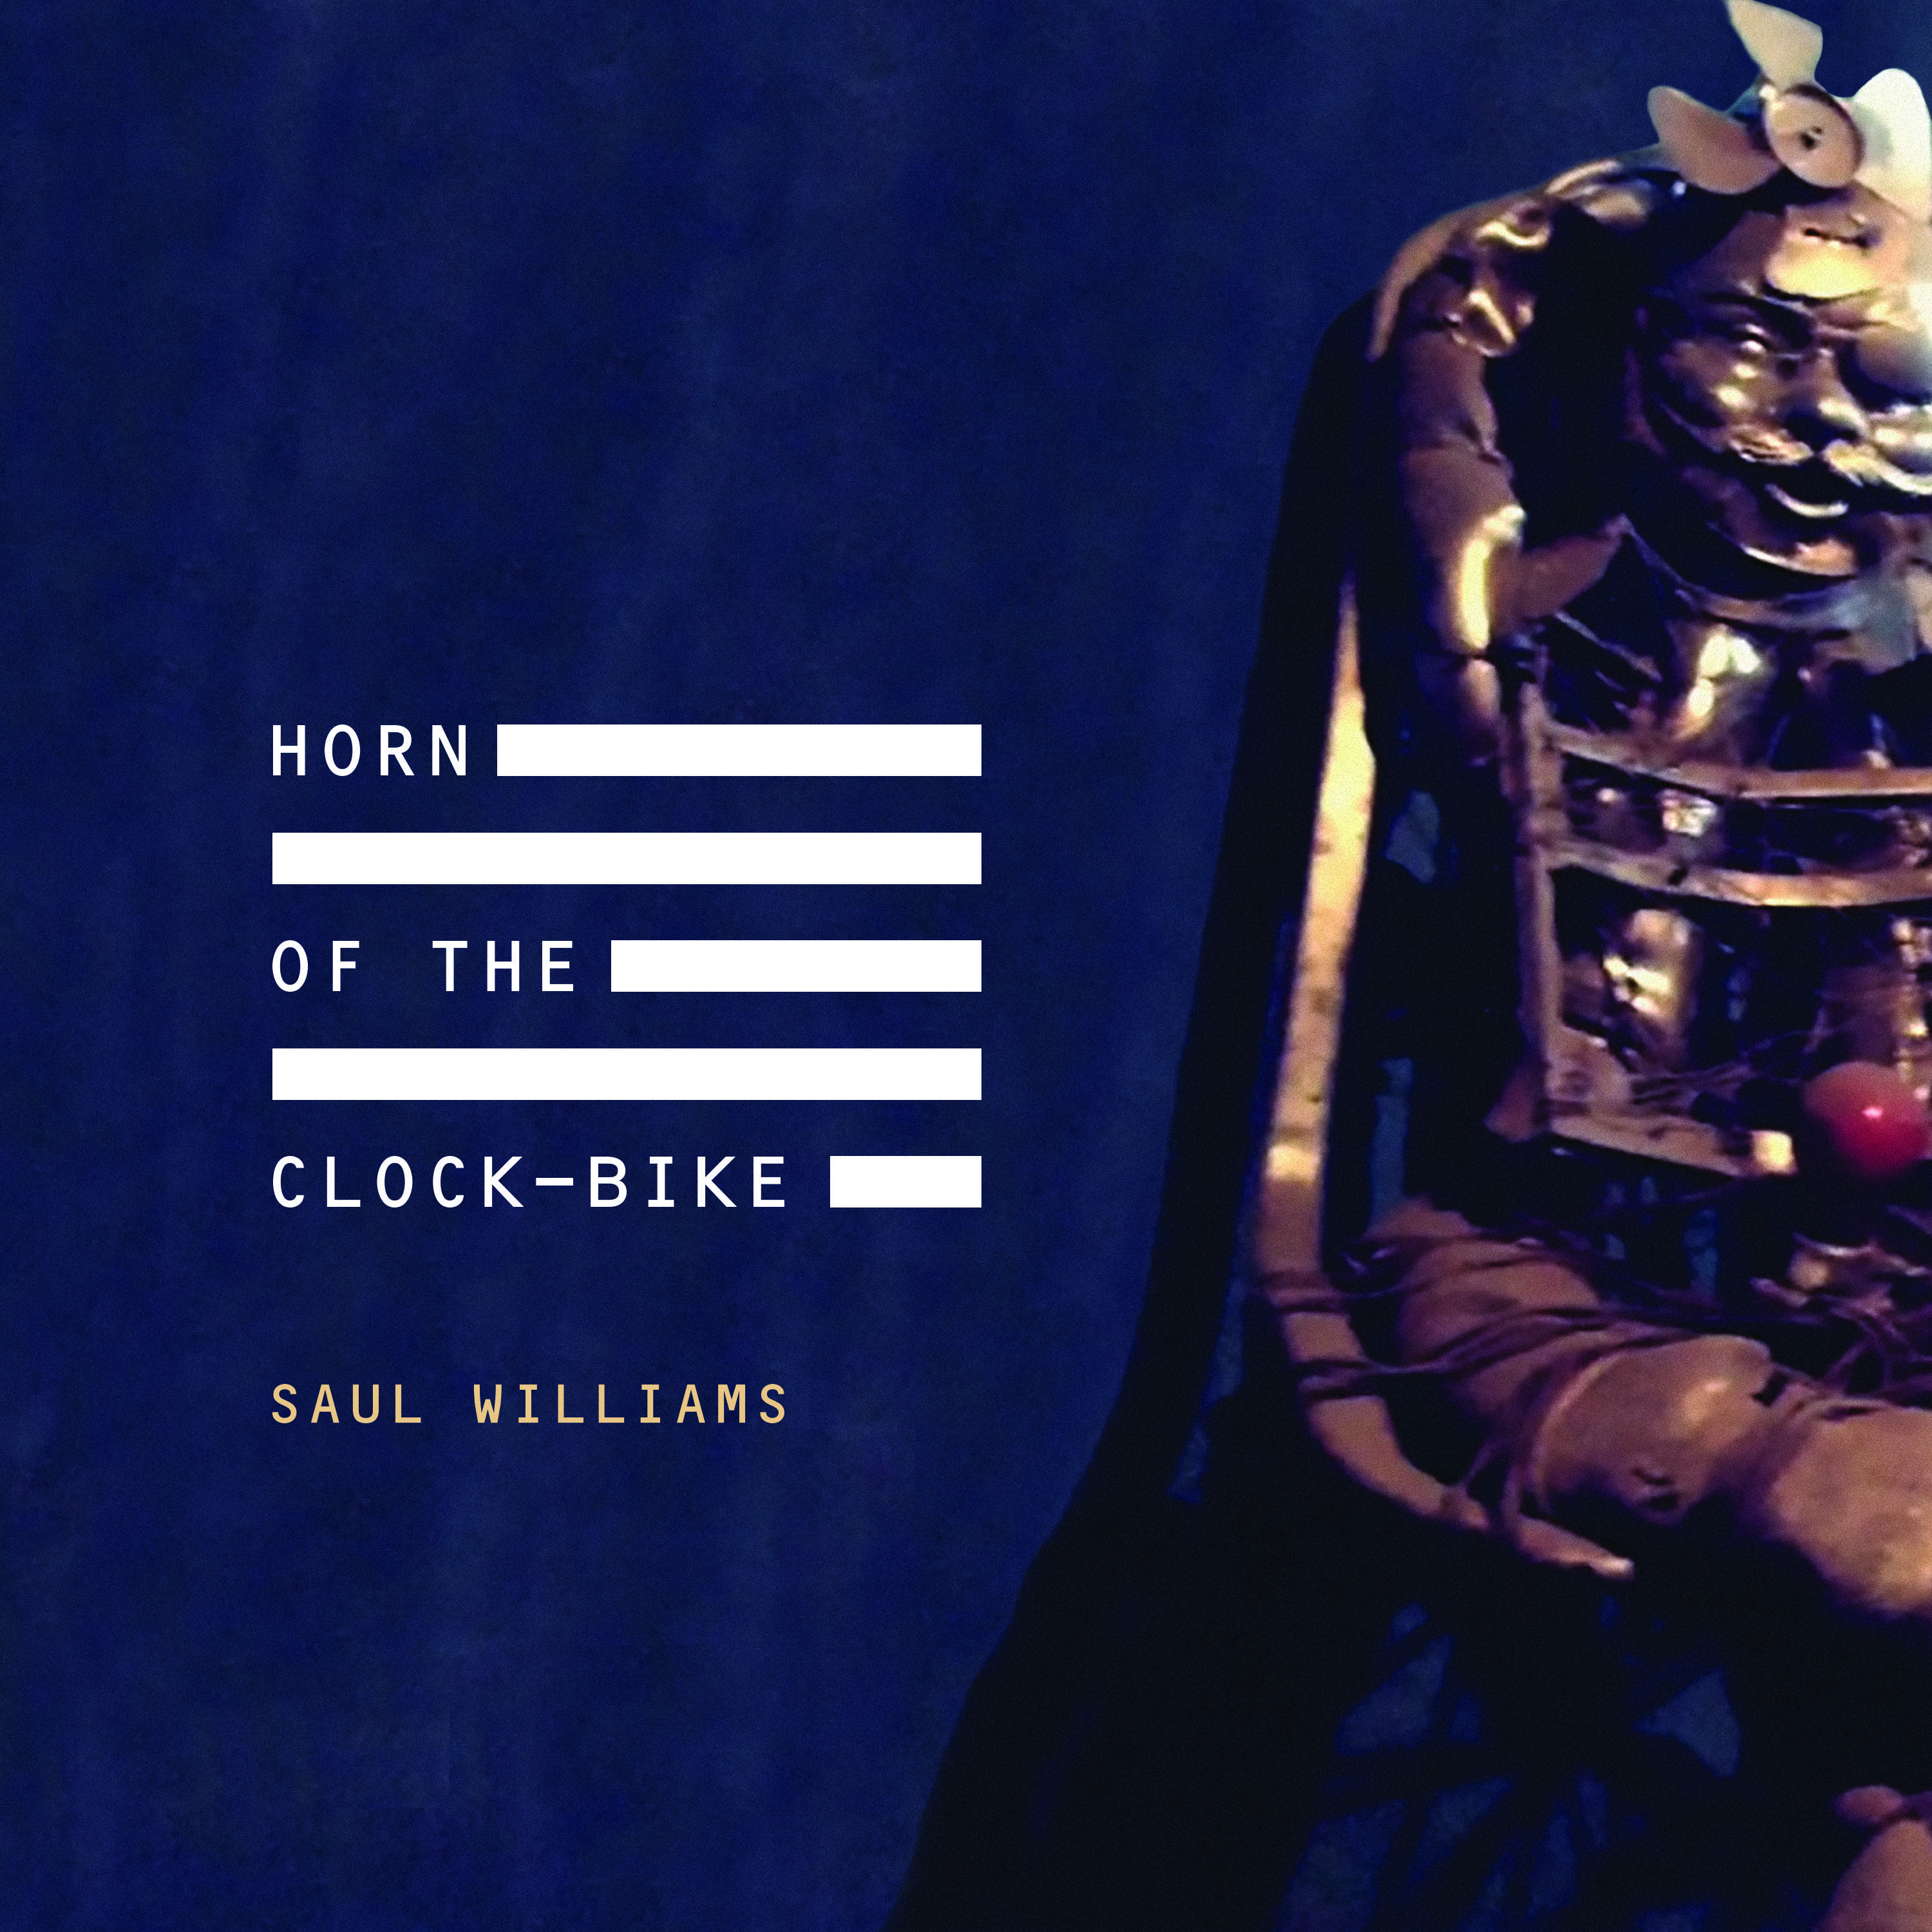 Saul-Williams-Horn-of-the-Clock-Bike